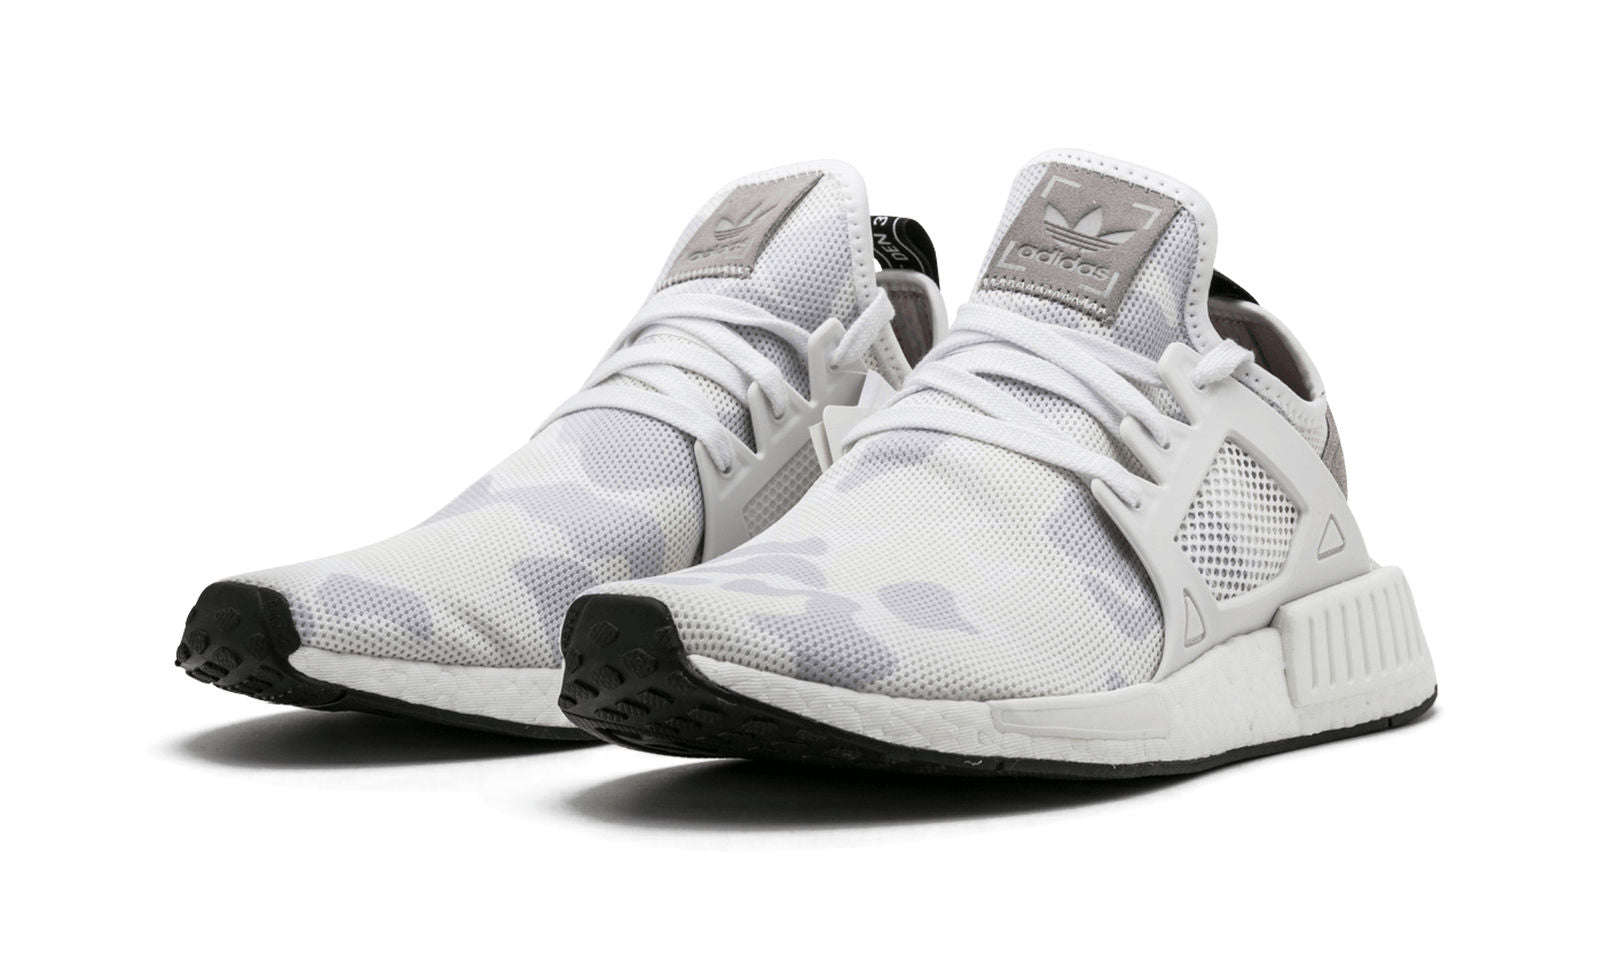 New adidas nmd xr1 nomad boost dunk pak white core black